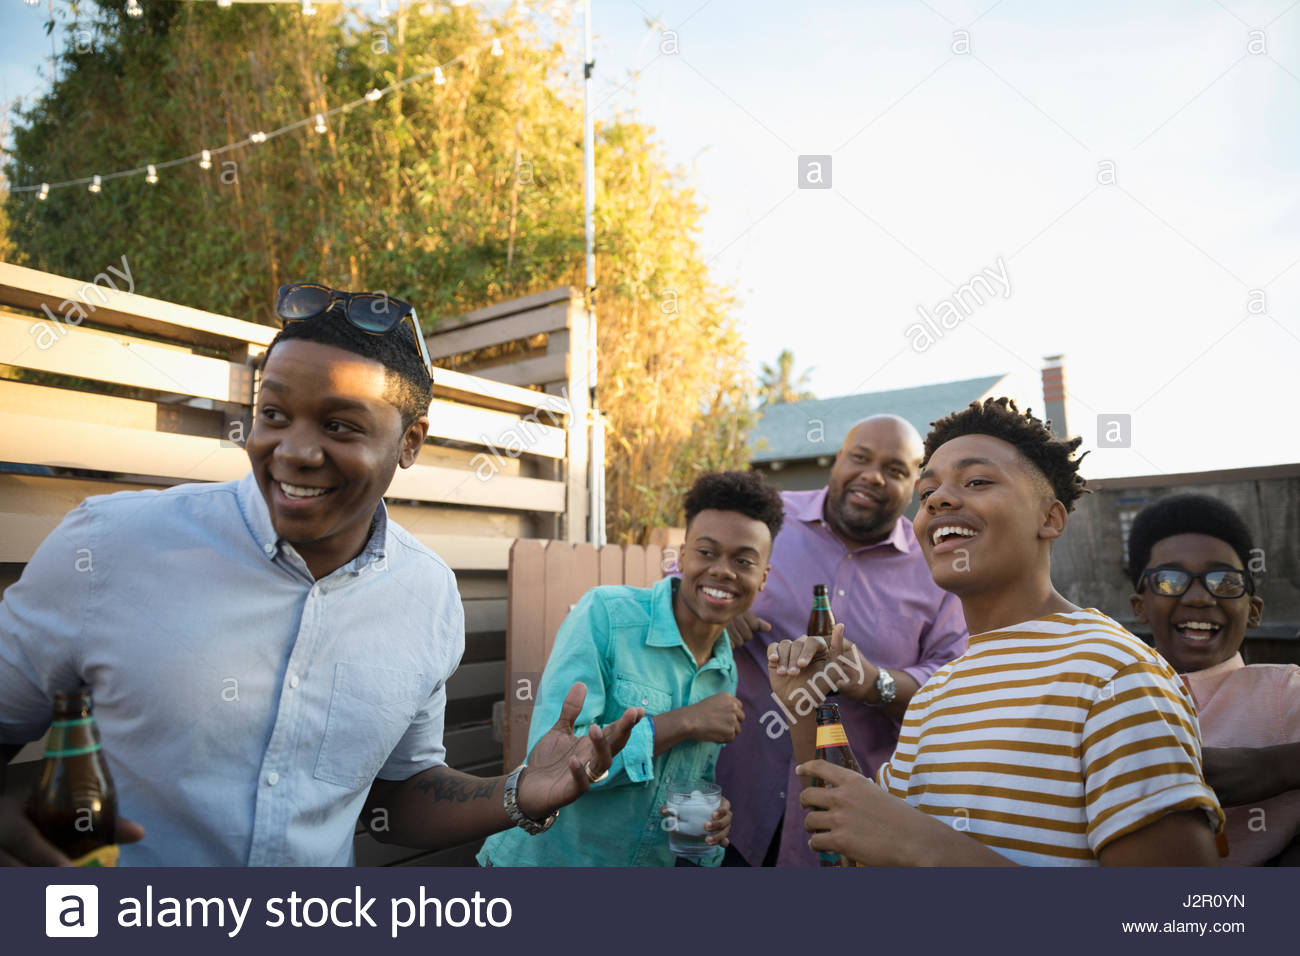 African American family drinking and laughing on summer deck - Stock Image